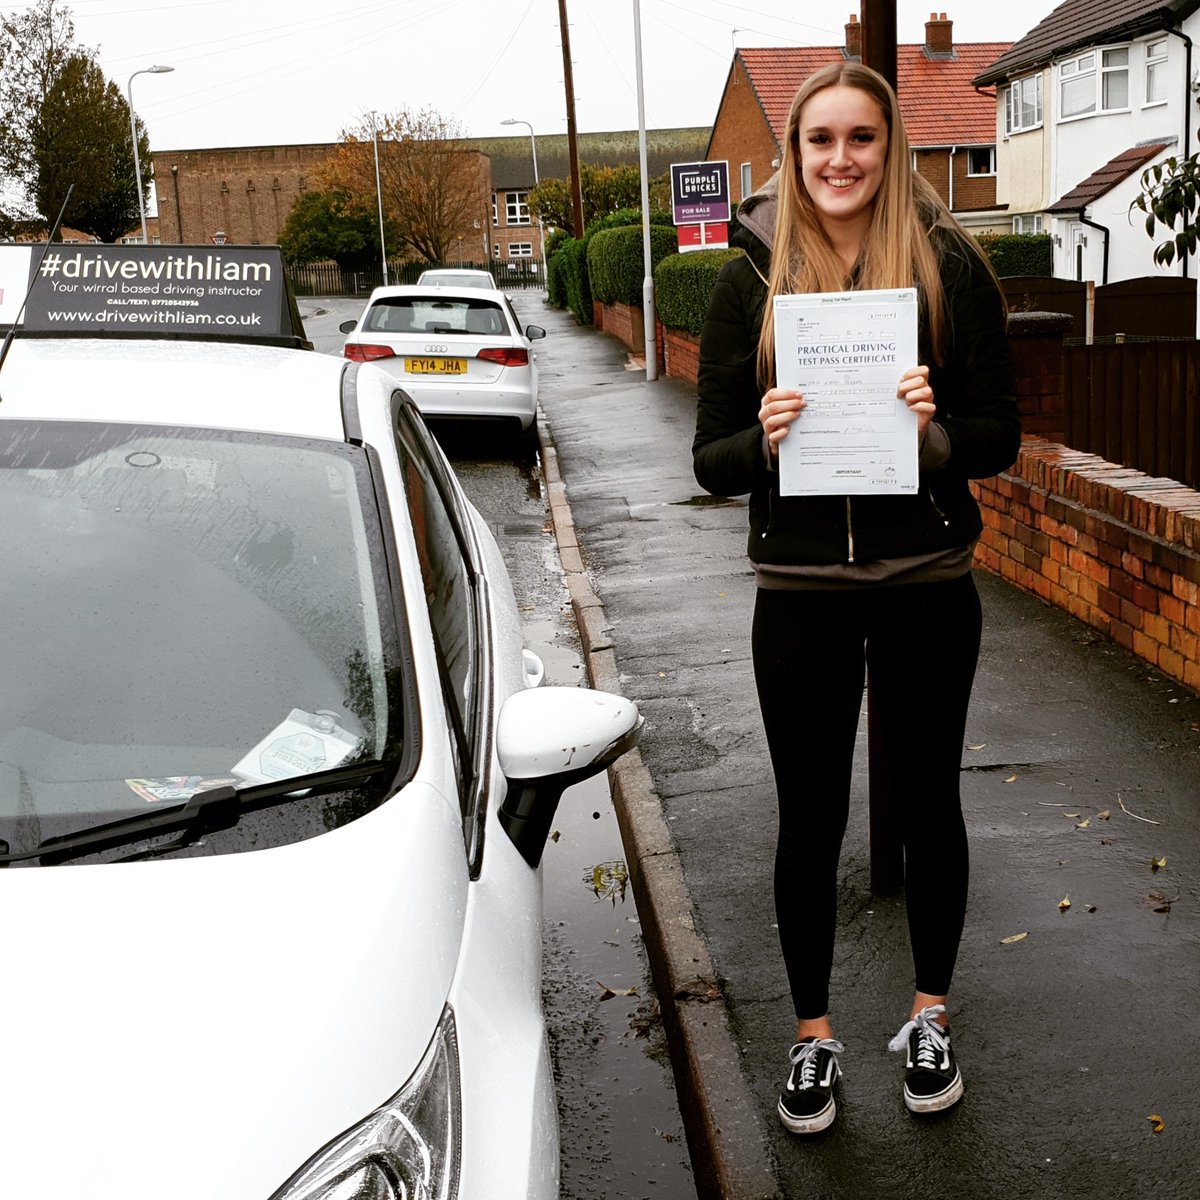 https://m.facebook.com/story.php?story_fbid=2768746479826719&id=1893930113975031 …http://www.drivewithliam.co.uk  #drivewithliam #Driving #instructor #DrivingLessons #Wirral #Birkenhead #Wallassey #Westkirby #Heswall #Neston #Bebington #Pensby #Irby #Woodchurch #Greasby #Pass